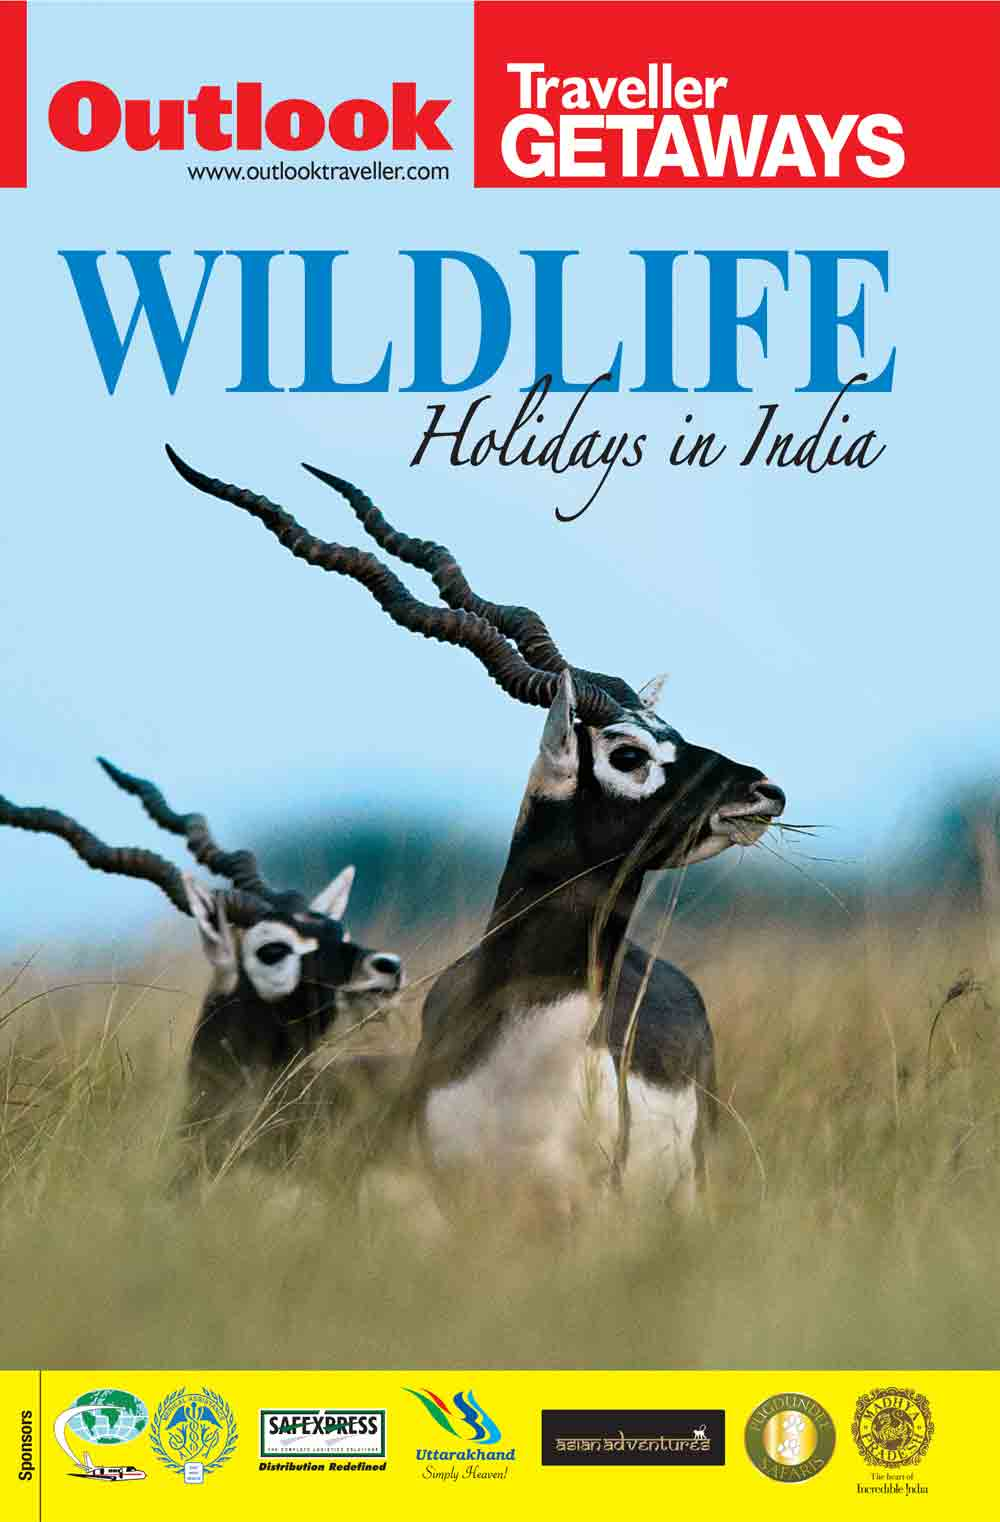 Wildlife Holidays in India